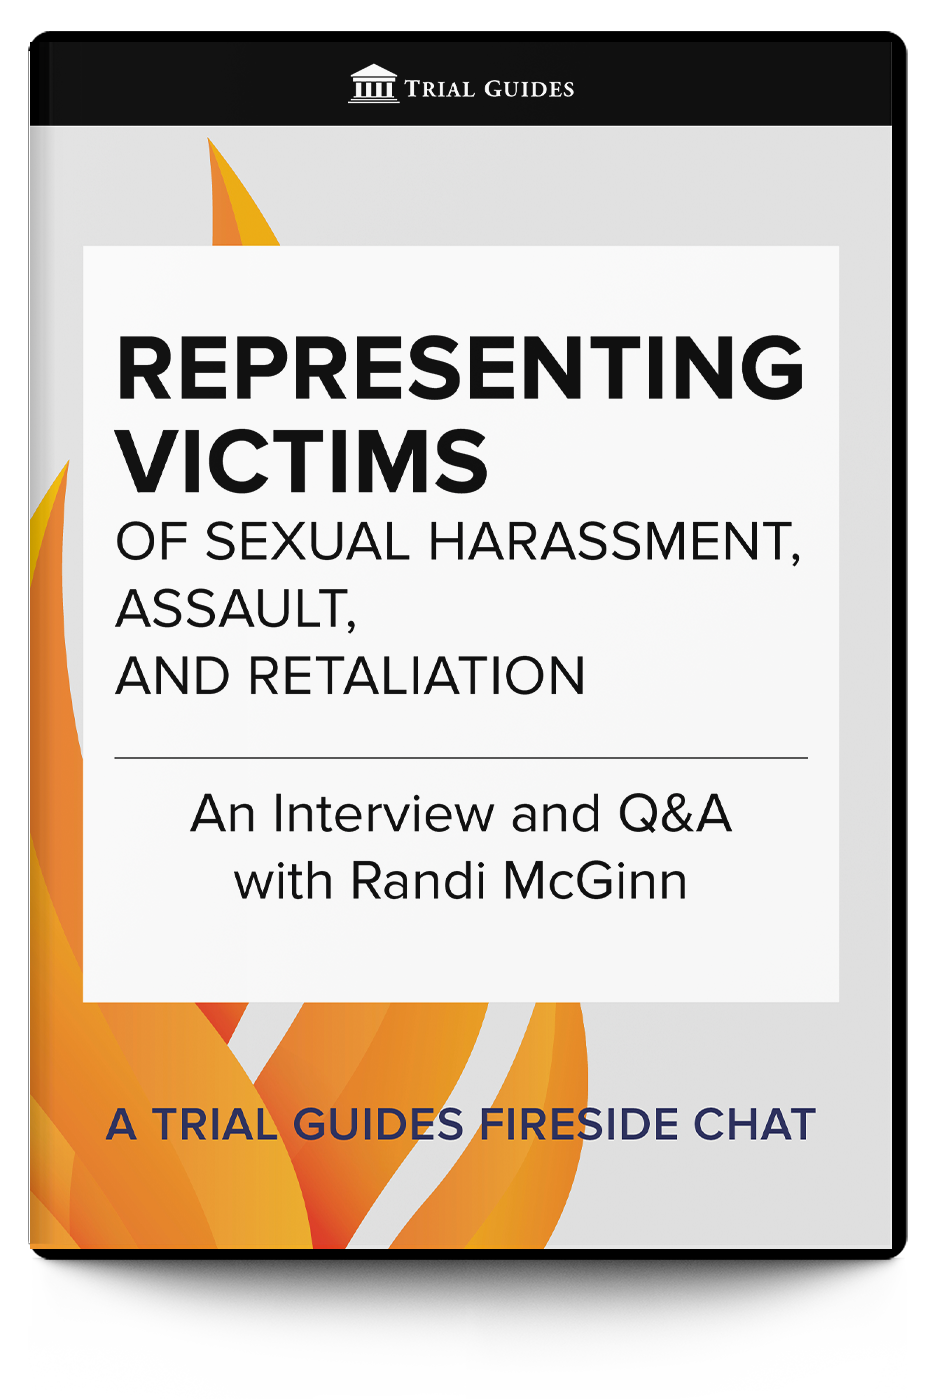 Representing Victims of Sexual Harassment, Assault, and Retaliation